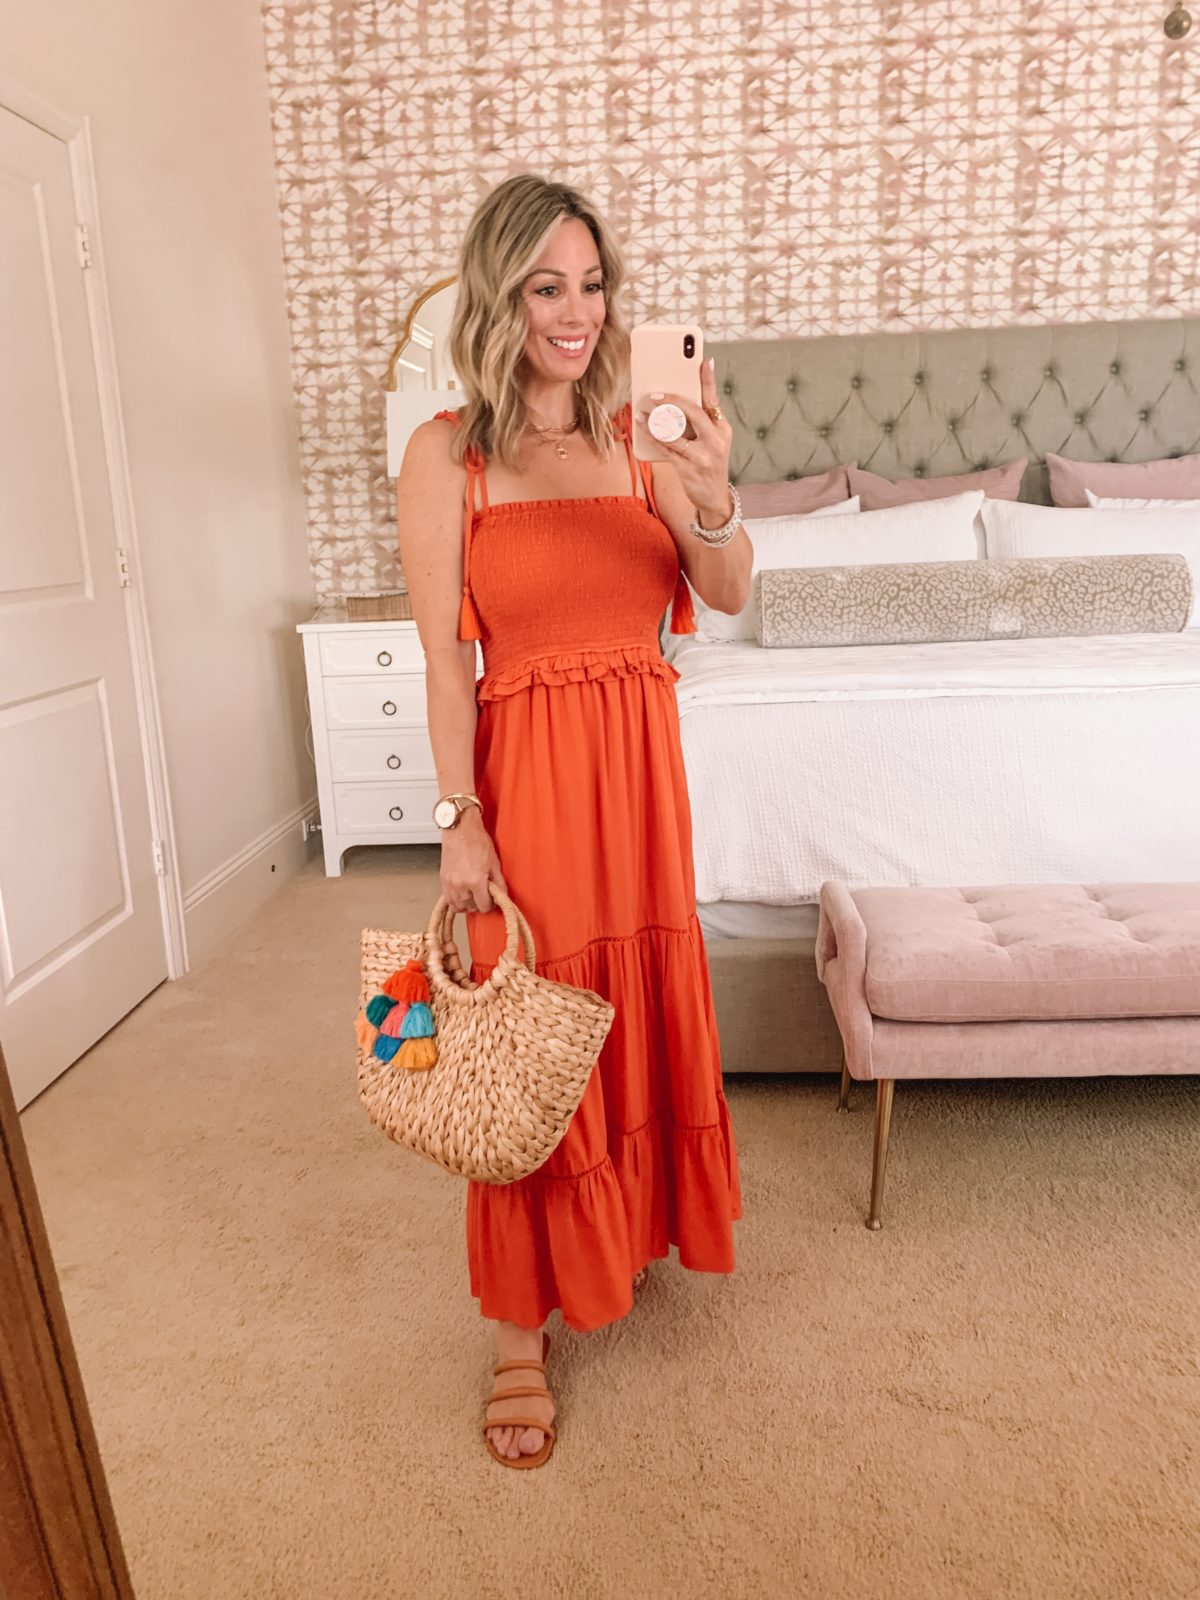 Orange Smocked Maxi Dress, Woven Bag